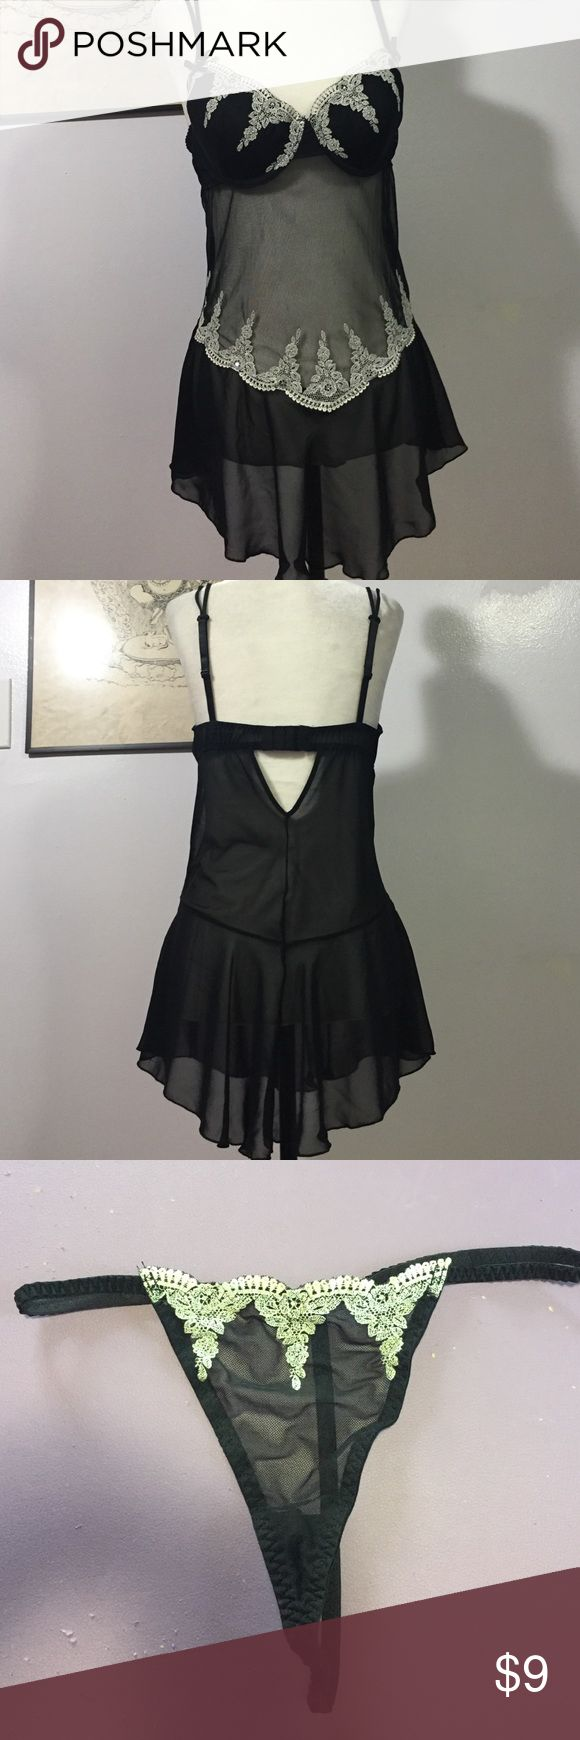 Delicates Lingerie Set- Med Lovely black nylon with white lace teim & a hint of sparkle! Twin adjustable spaghetti straps & back closure- excellent condition 💜 Delicates Intimates & Sleepwear